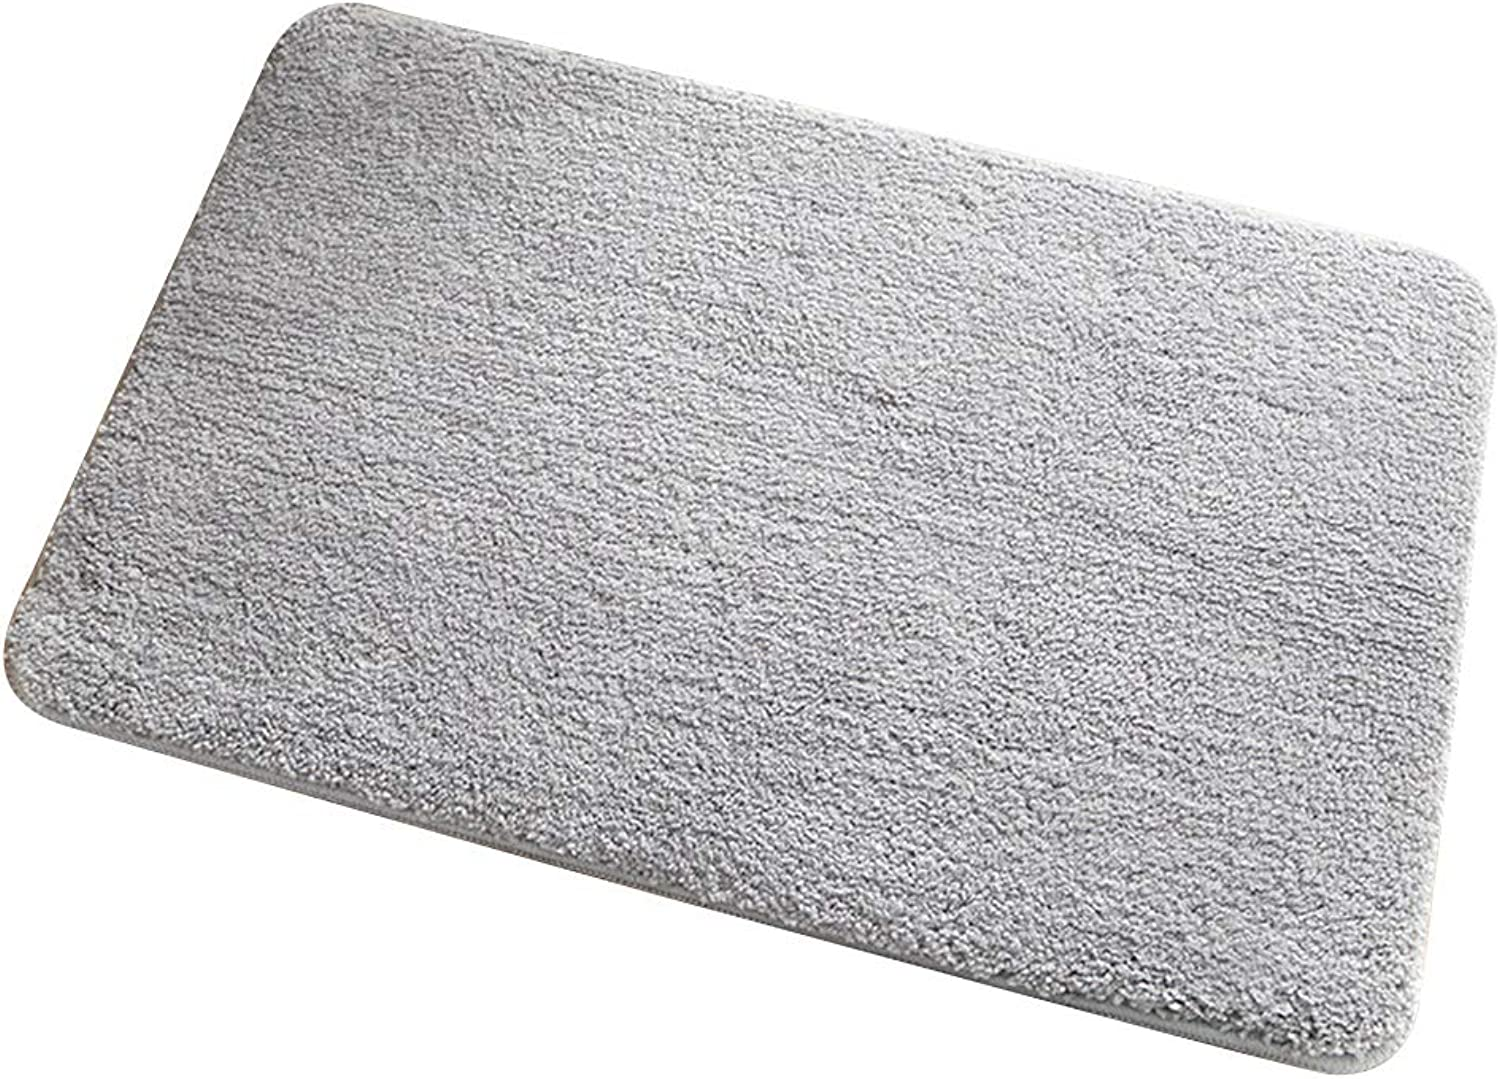 MING REN Floor mat - Fiber Fabric, Soft and Thick, Non-Slip Water Absorption, Good Breathability, Comfortable to Touch, Rectangular Home Lambskin Fiber Bathroom Bedroom Water Absorption Hall Door mat